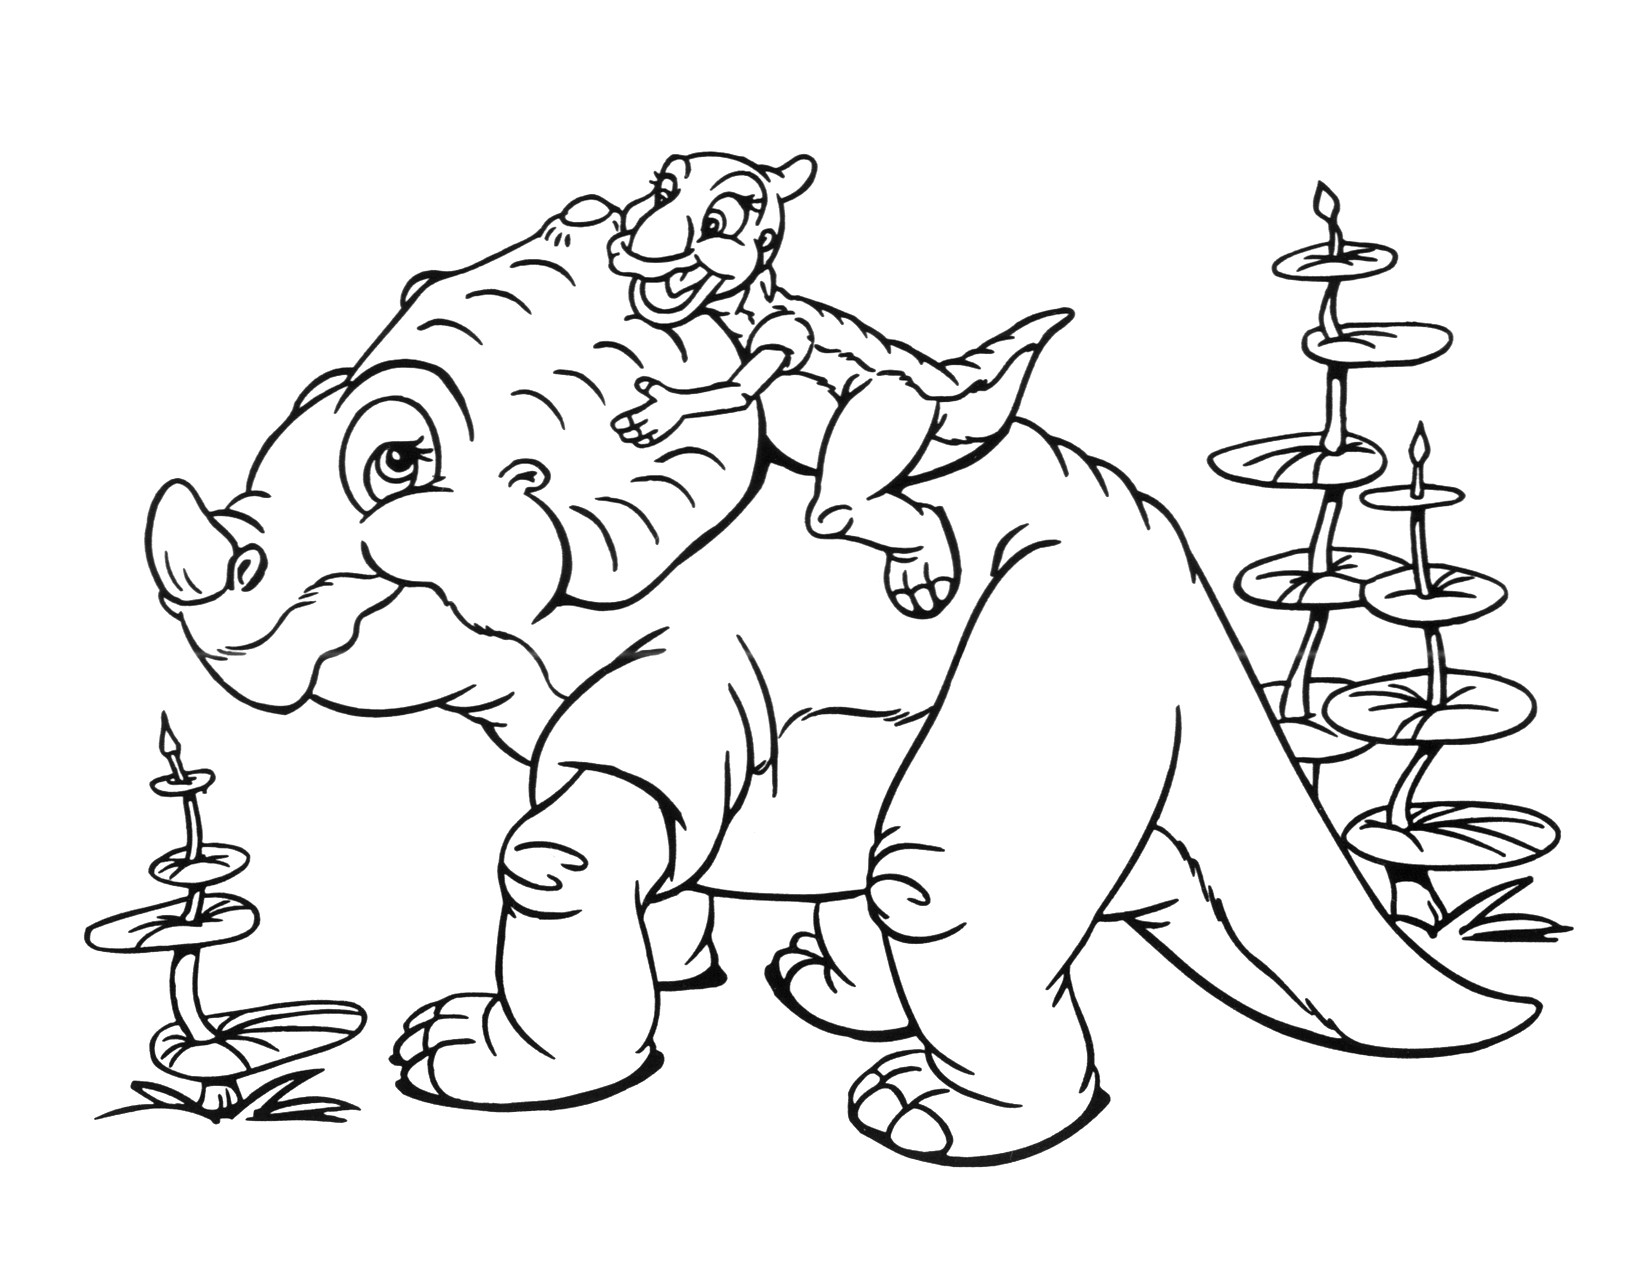 1650x1275 Make Your Own Coloring Pages Inspirational Best Free Printable